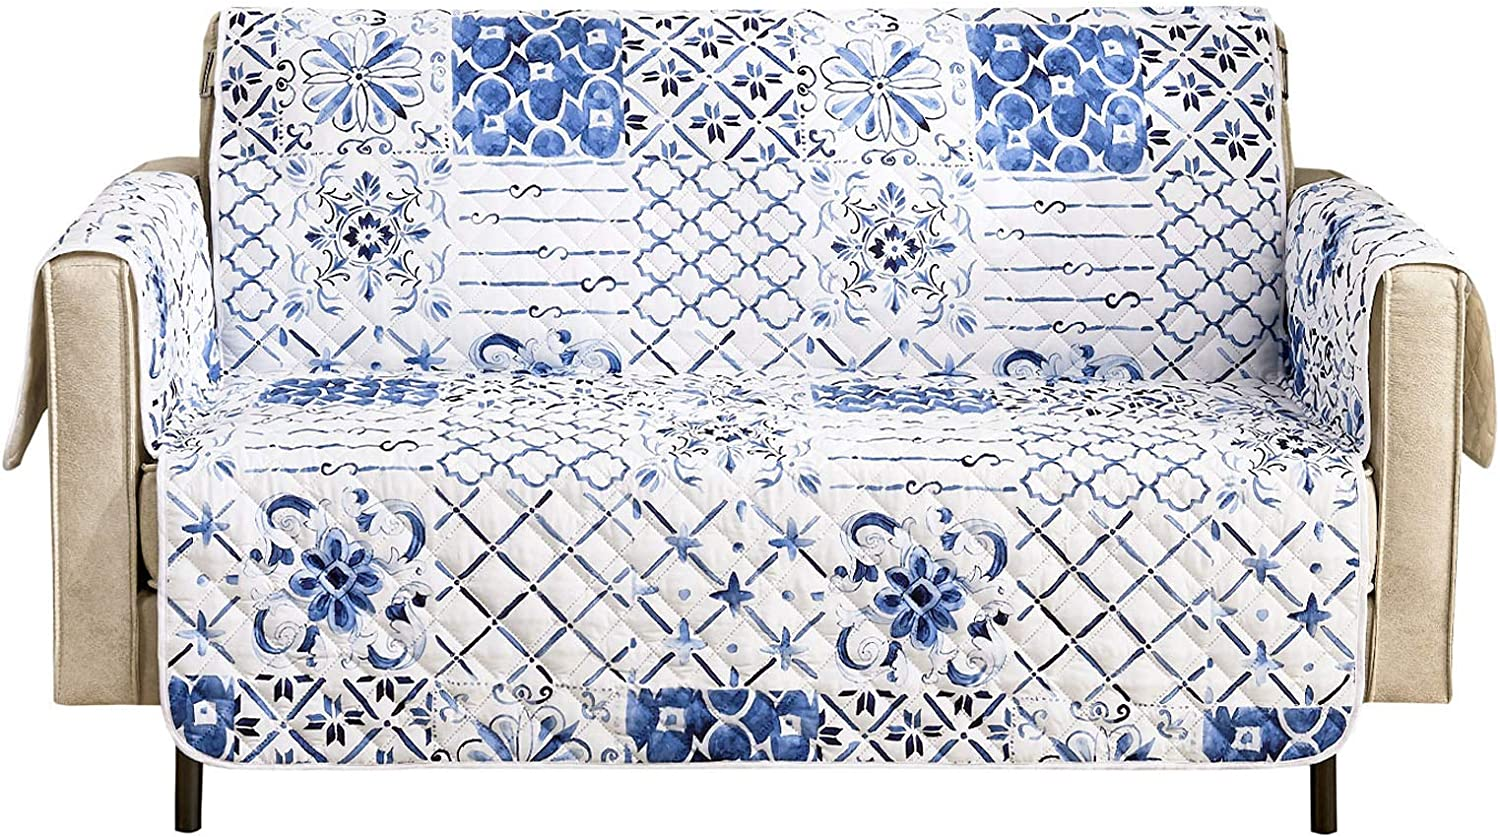 """Wake In Cloud - Sofa Cover 100% Waterproof Non-Slip, Pets Dogs Cats Kids Furniture Protector 3 Cushion Couch Slip Cover, Elastic Strap, Blue White Moroccan Tiles Mosaic Patchwork (70"""" Sofa)"""